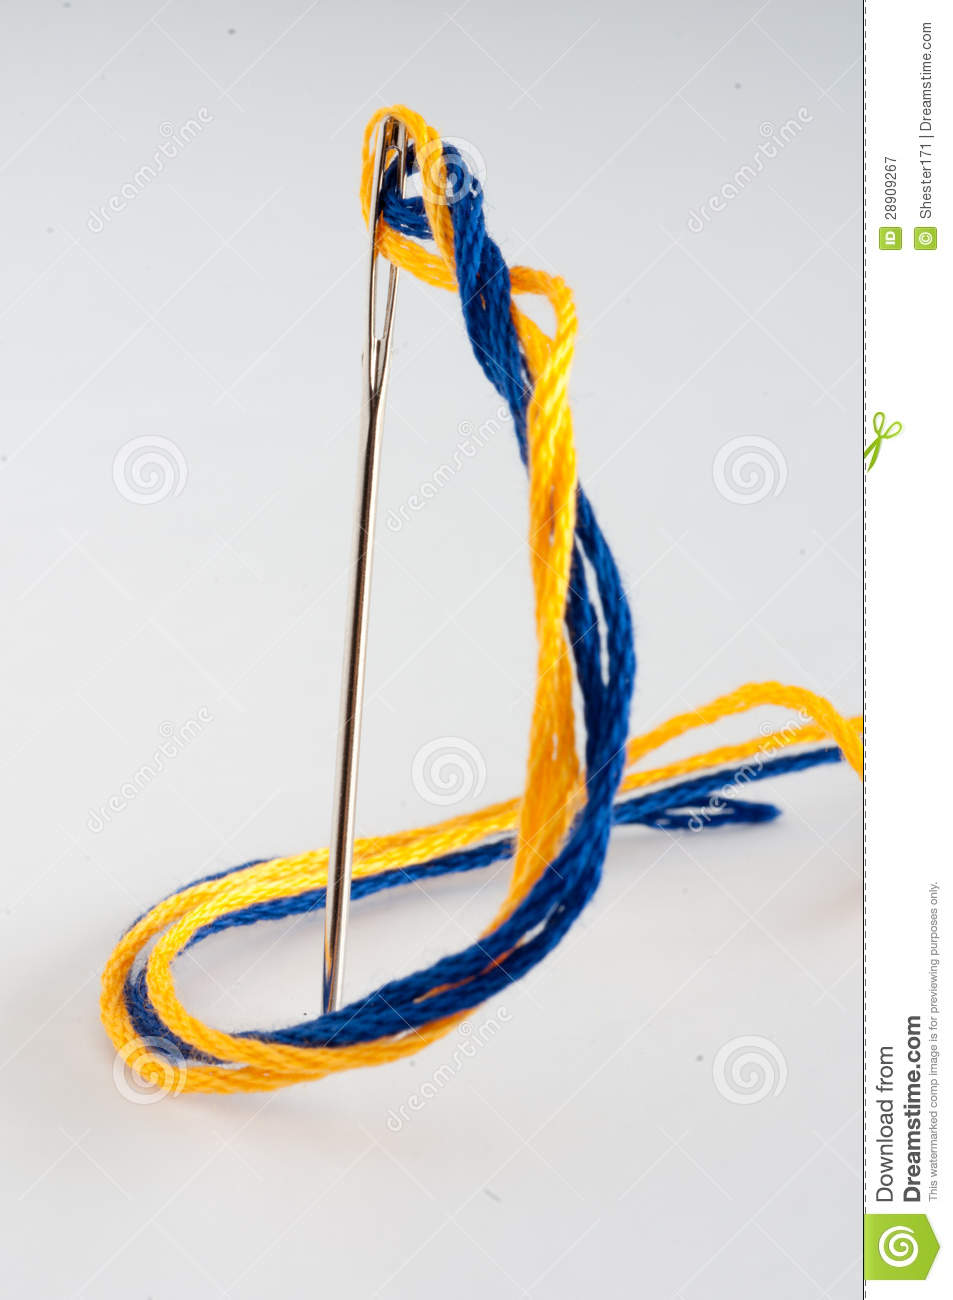 Download Needle And Embroidery Thread Stock Image - Image of thread, stitch: 28909267